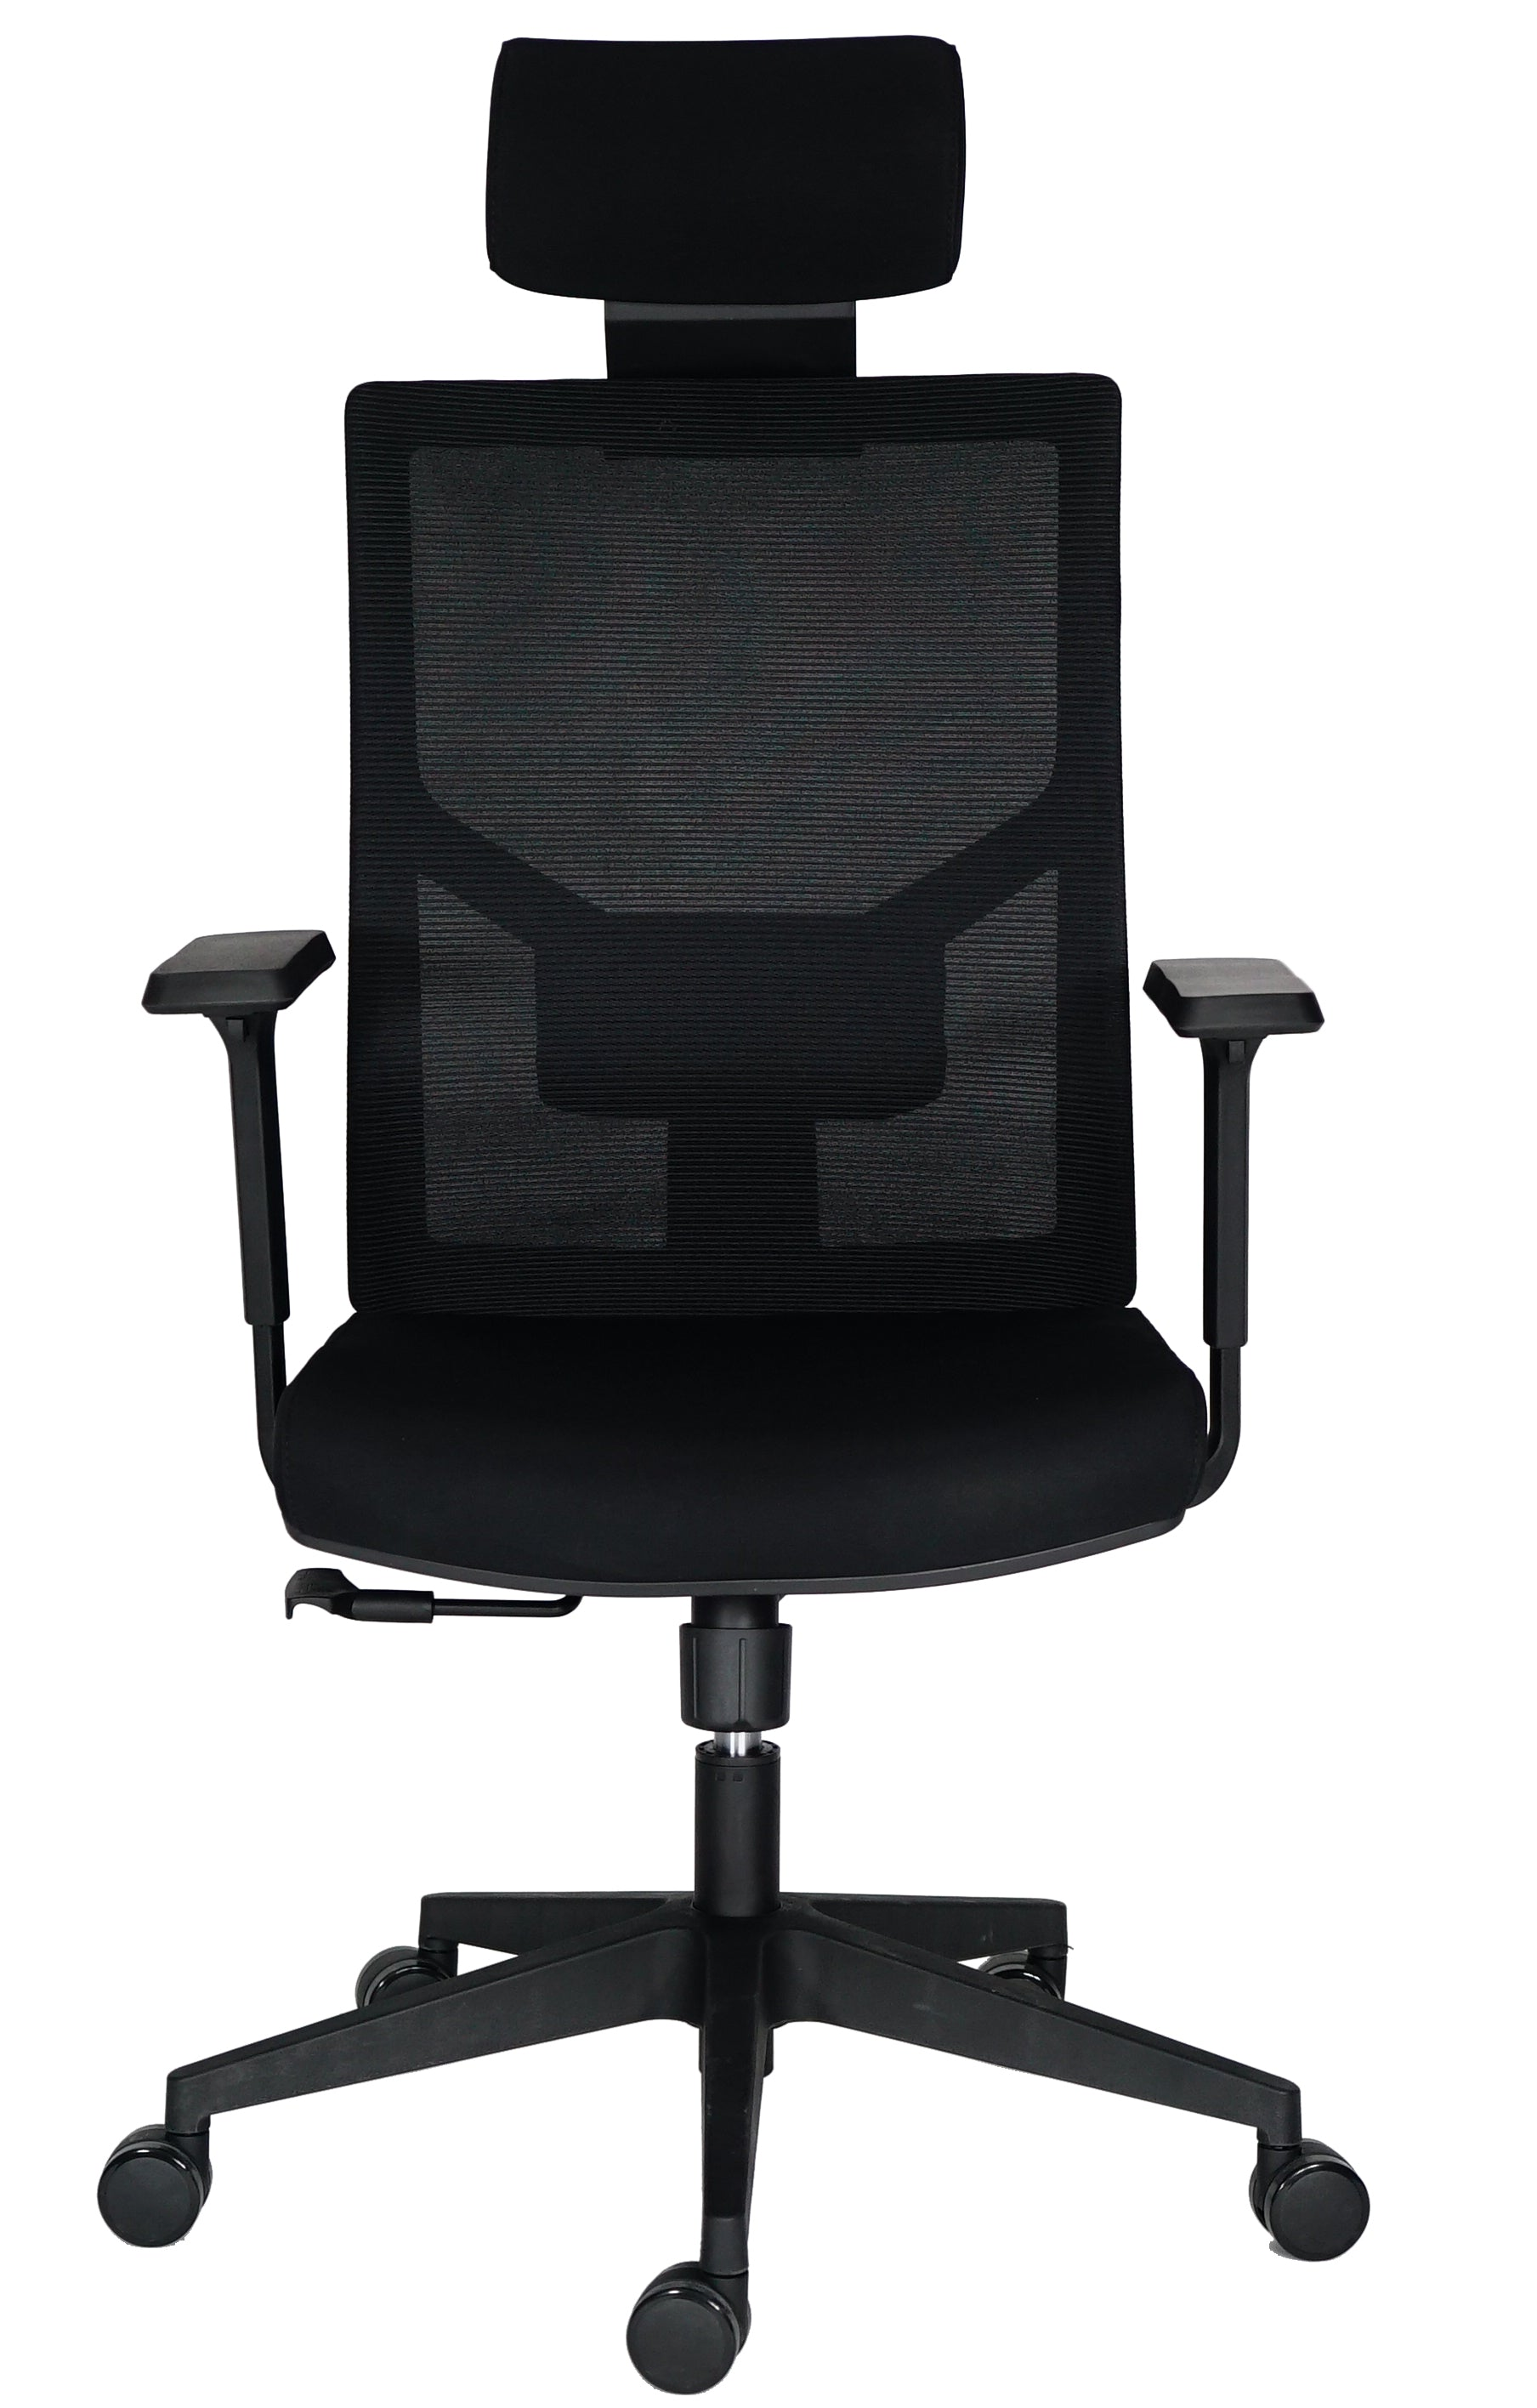 Silla Ejecutiva Screen - offimobile